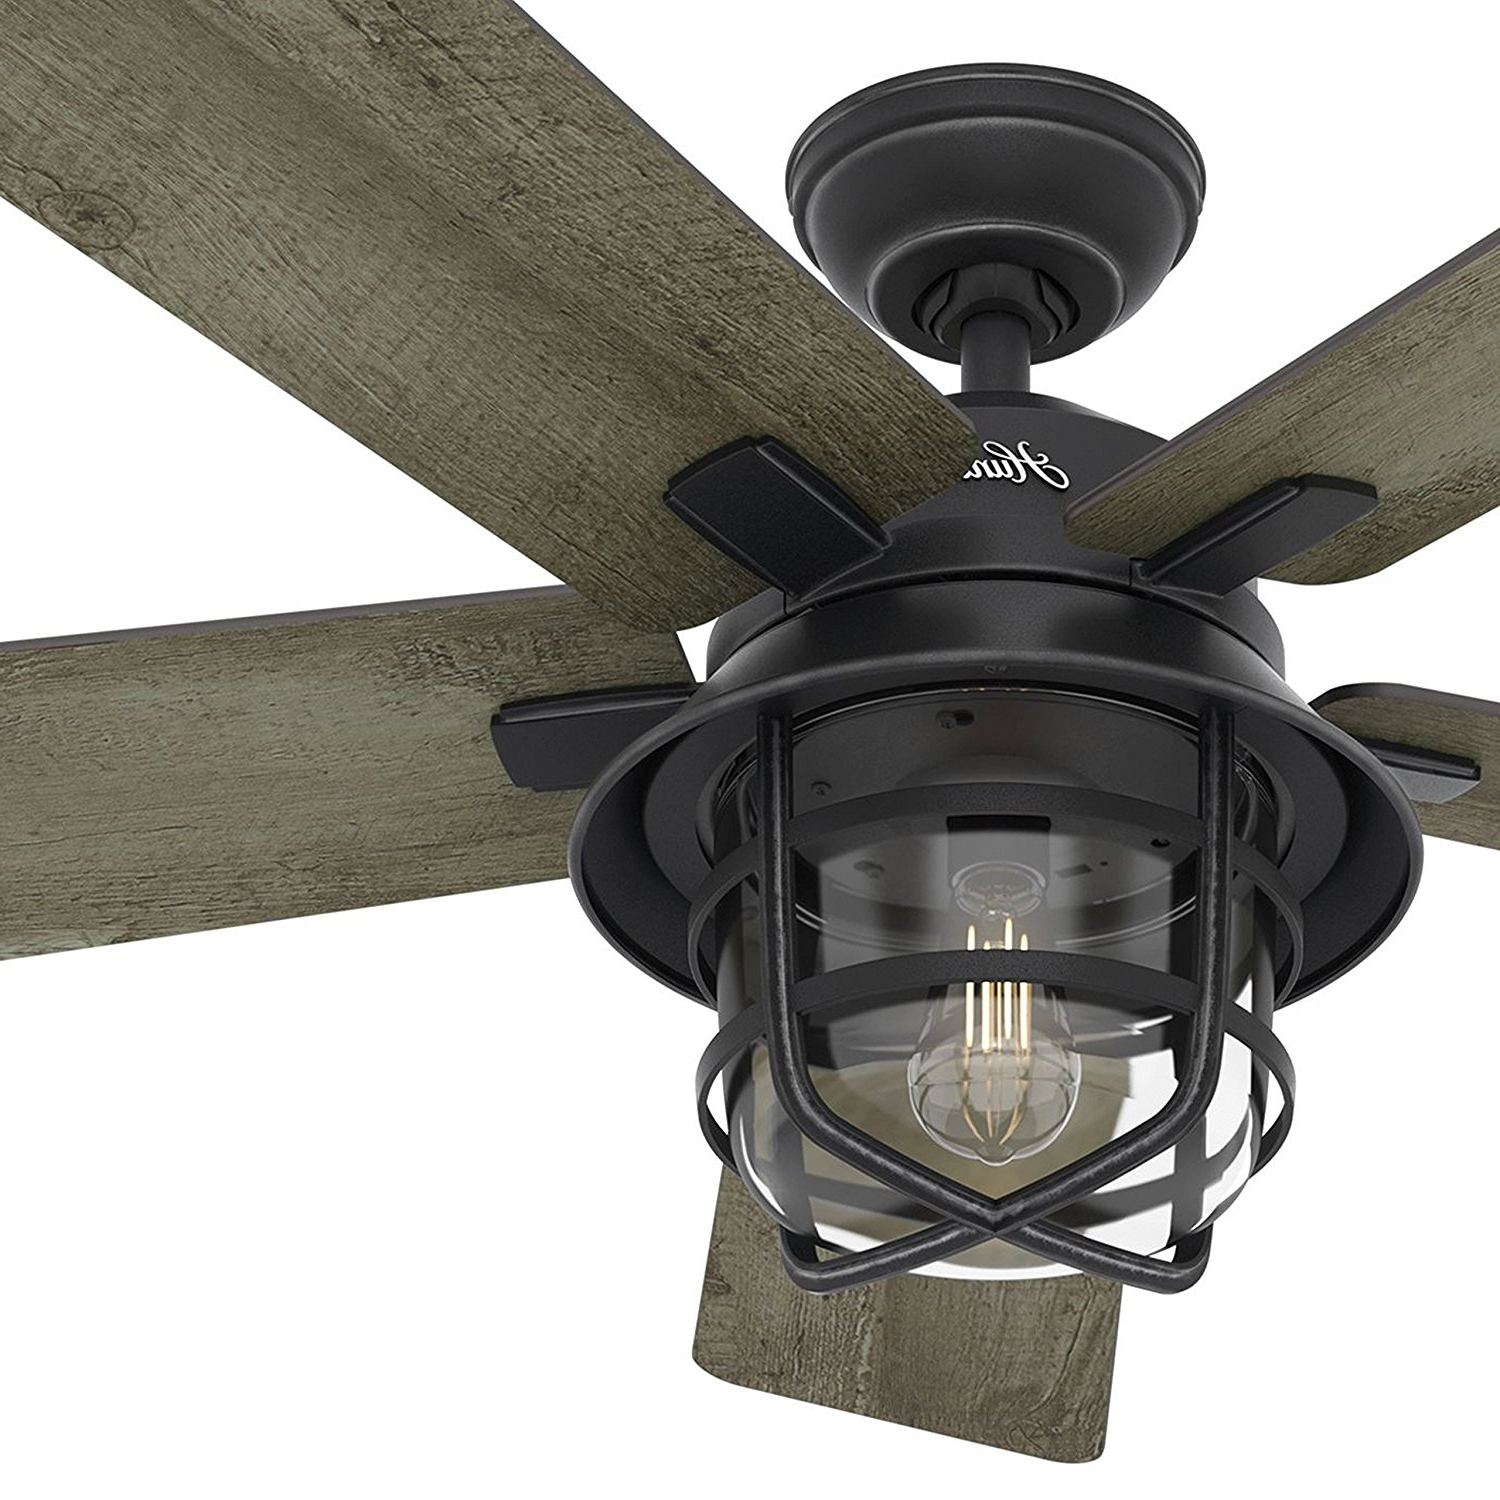 Best And Newest Outdoor Ceiling Fans With Lantern Light Intended For Guide To Choosing An Outdoor Ceiling Fan For Patios And Decks (View 17 of 20)